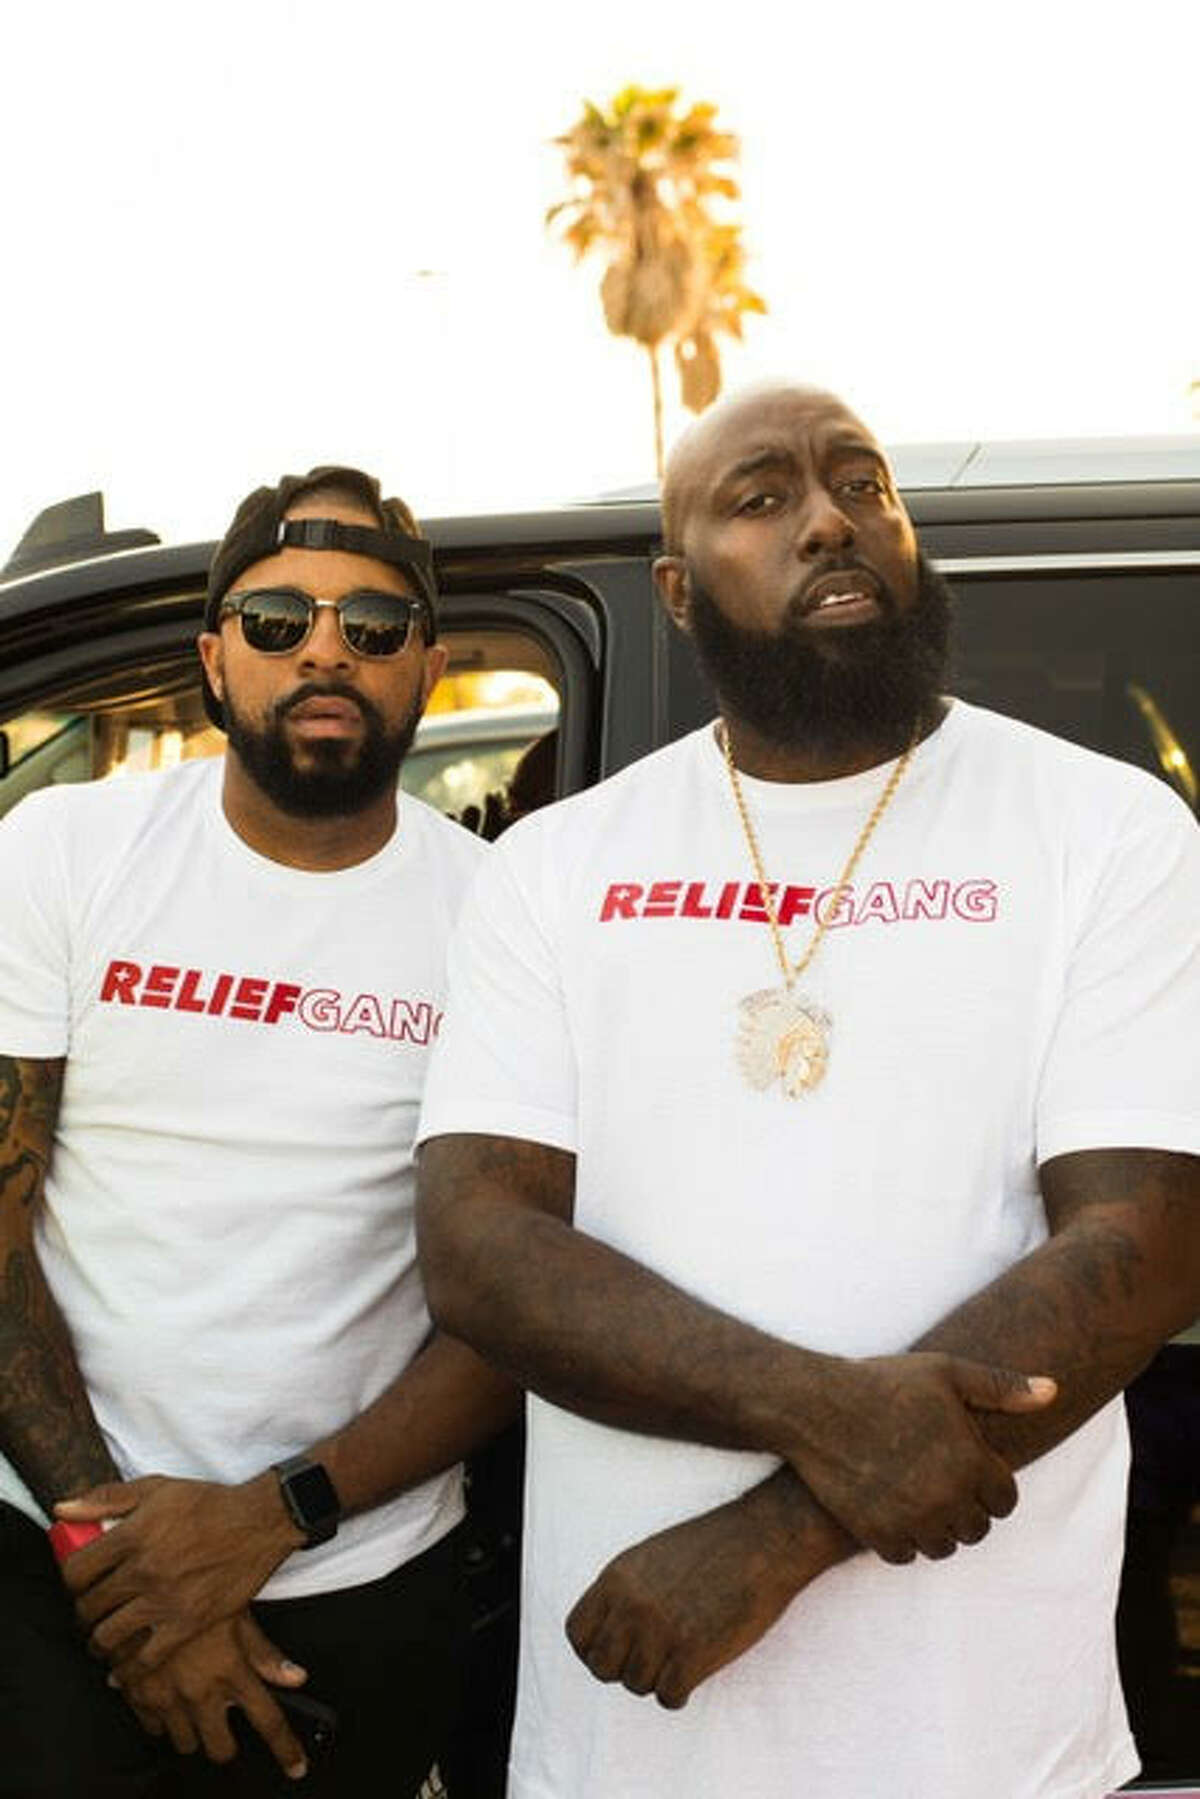 """Trae tha Truth, whose given name is Frazier Thompson III, was out driving through the flooded Houston area roads in his high-water truck, helping residents reach safety with the help of his cohort, Justin """"DJ Rogers"""" Rogers. >>> See more on Trae tha Truth ..."""